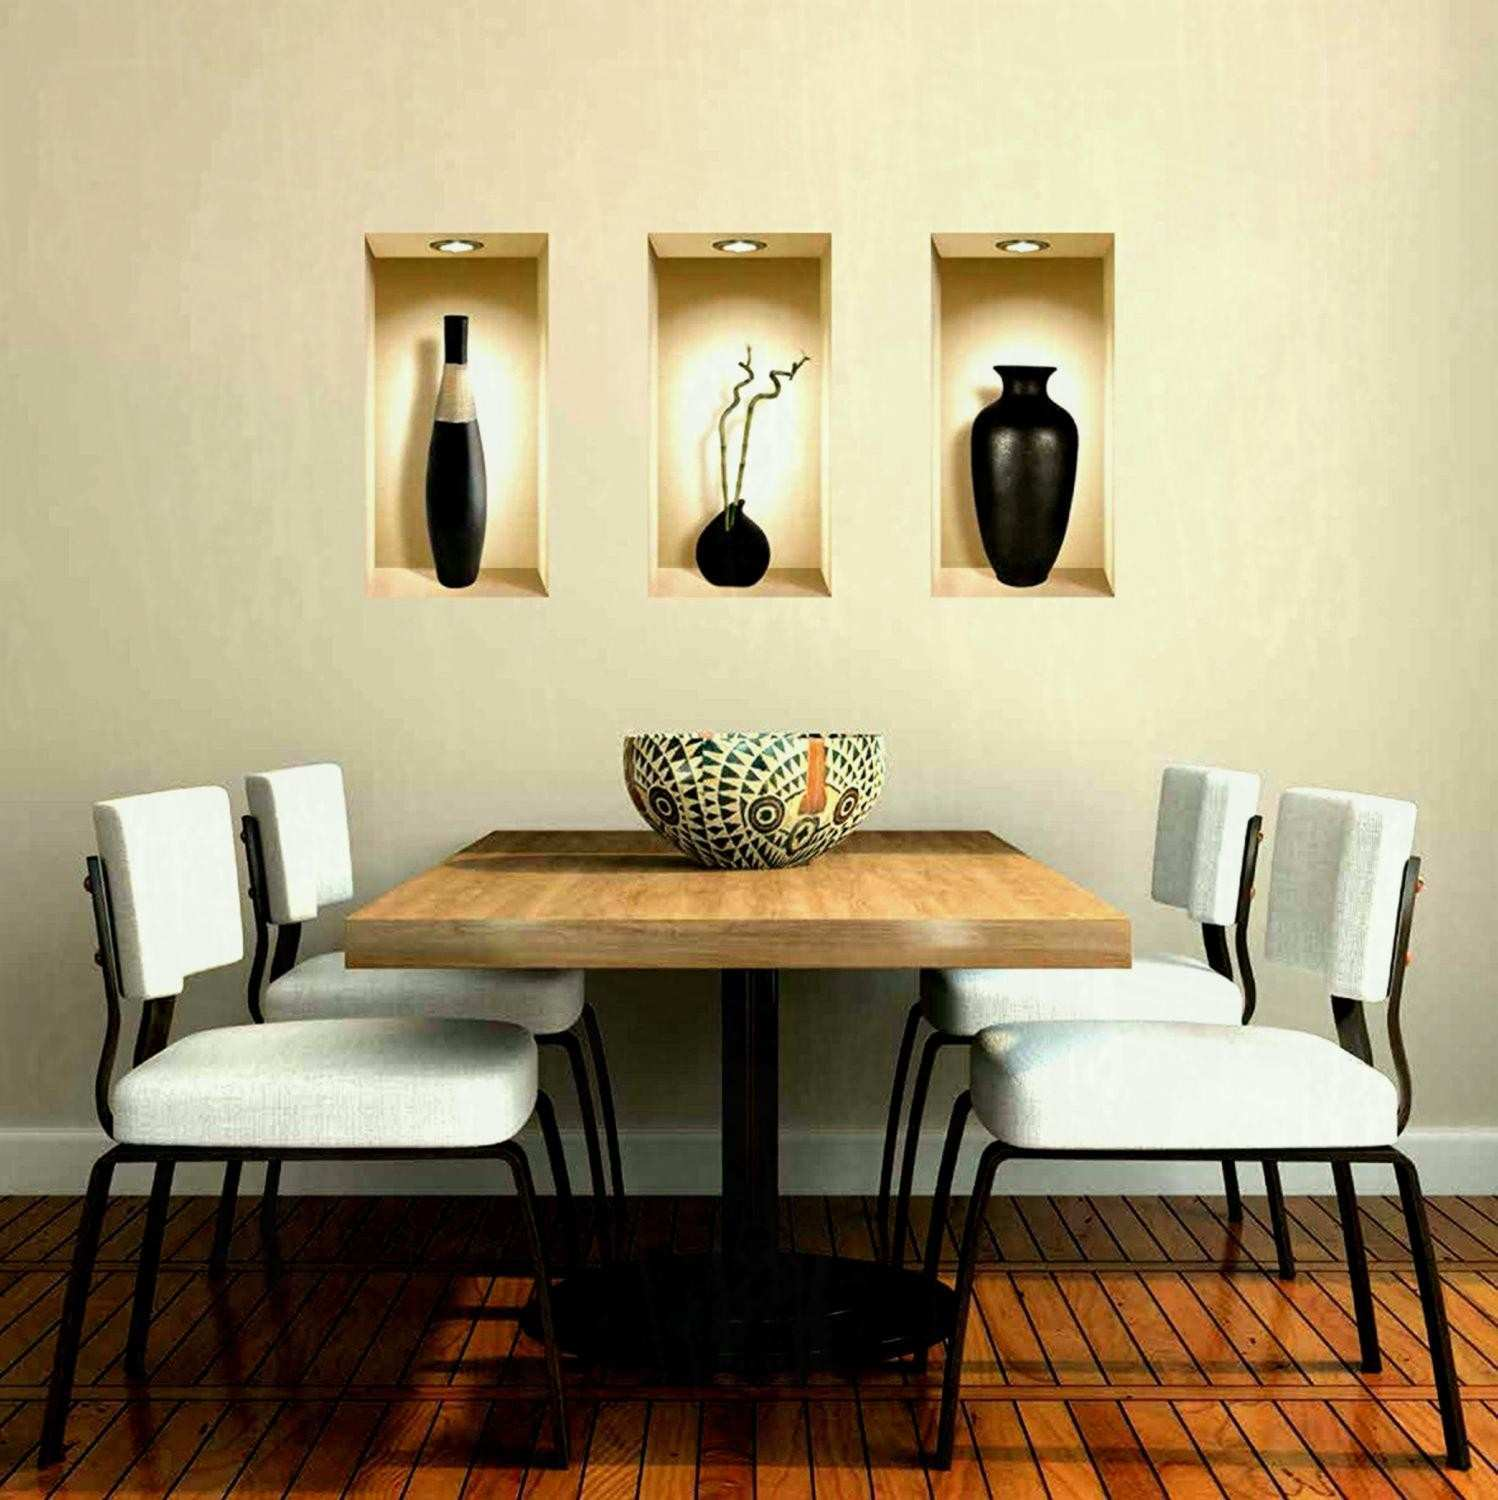 Wall Stickers For Dining Room Nurani Scheme Wall Decals For